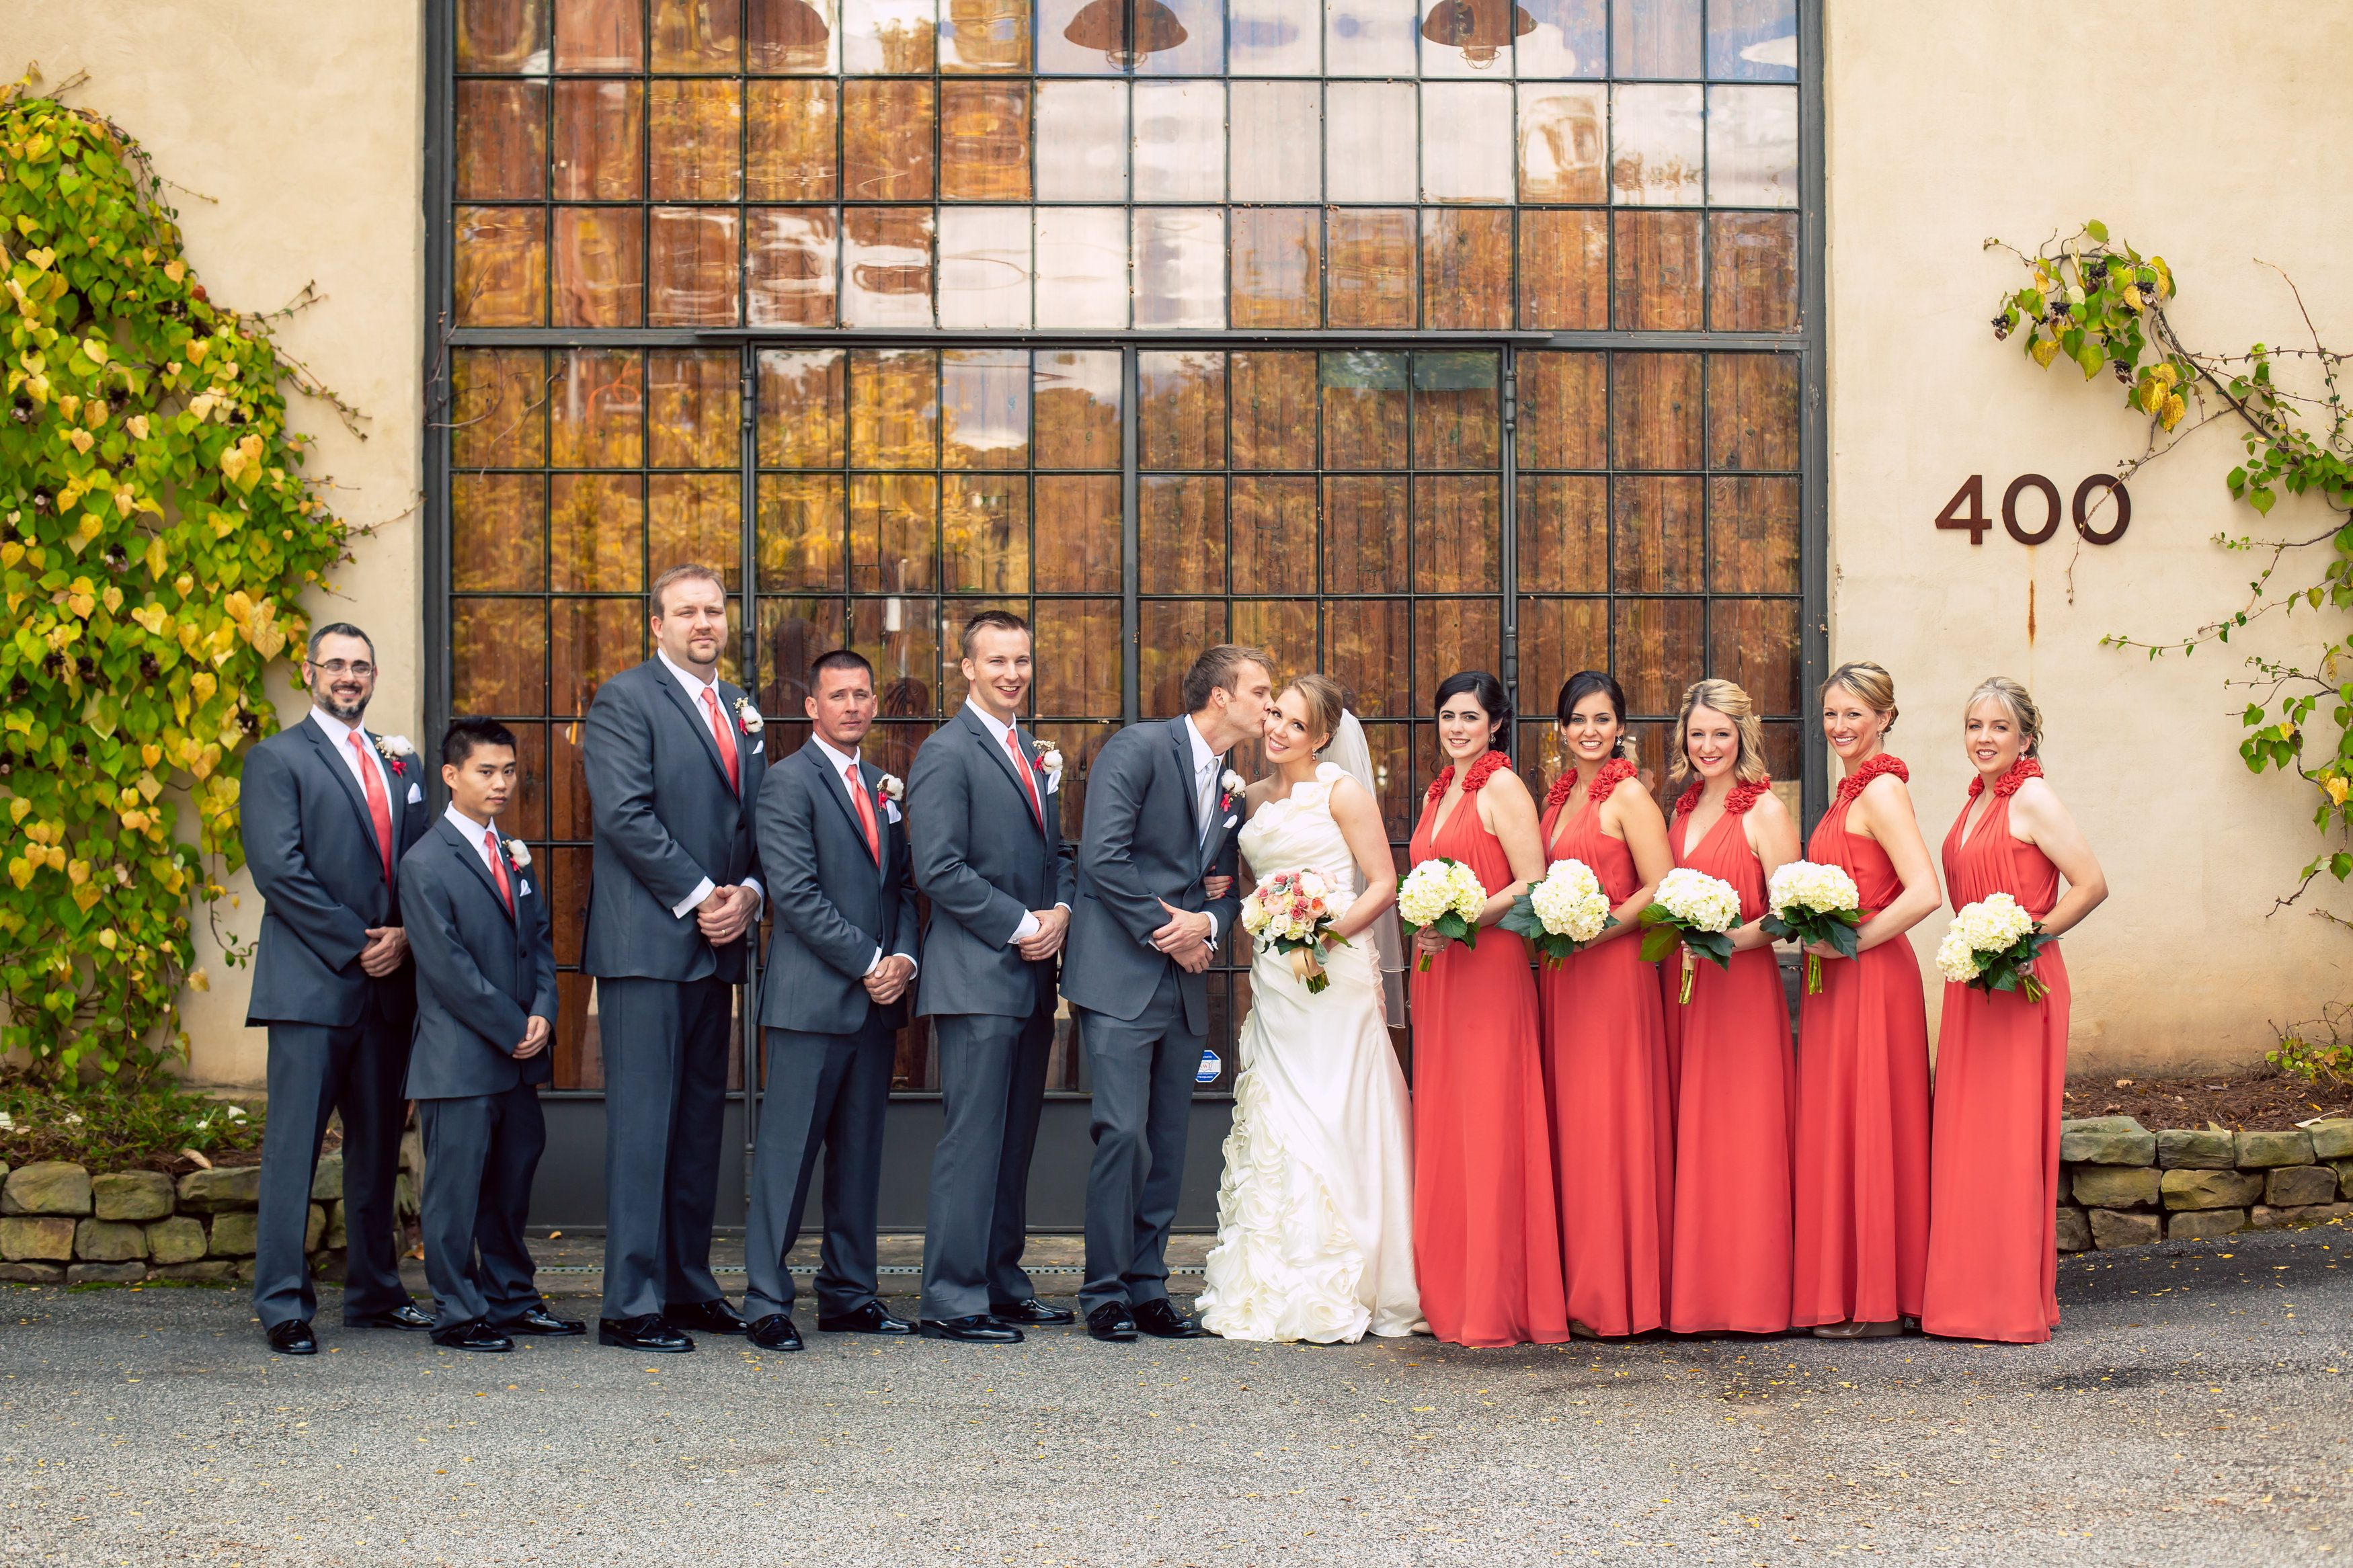 The groomsmen + bridesmaids with their favorite couple. ::Megan + Mark's bright + delightful wedding at the First Presbyterian Church and Summerour Studio in Atlanta, Georgia:: #wedding #photography #groupshot @Renata Sukopova Novara Events @Carrie Mcknelly's Bridal